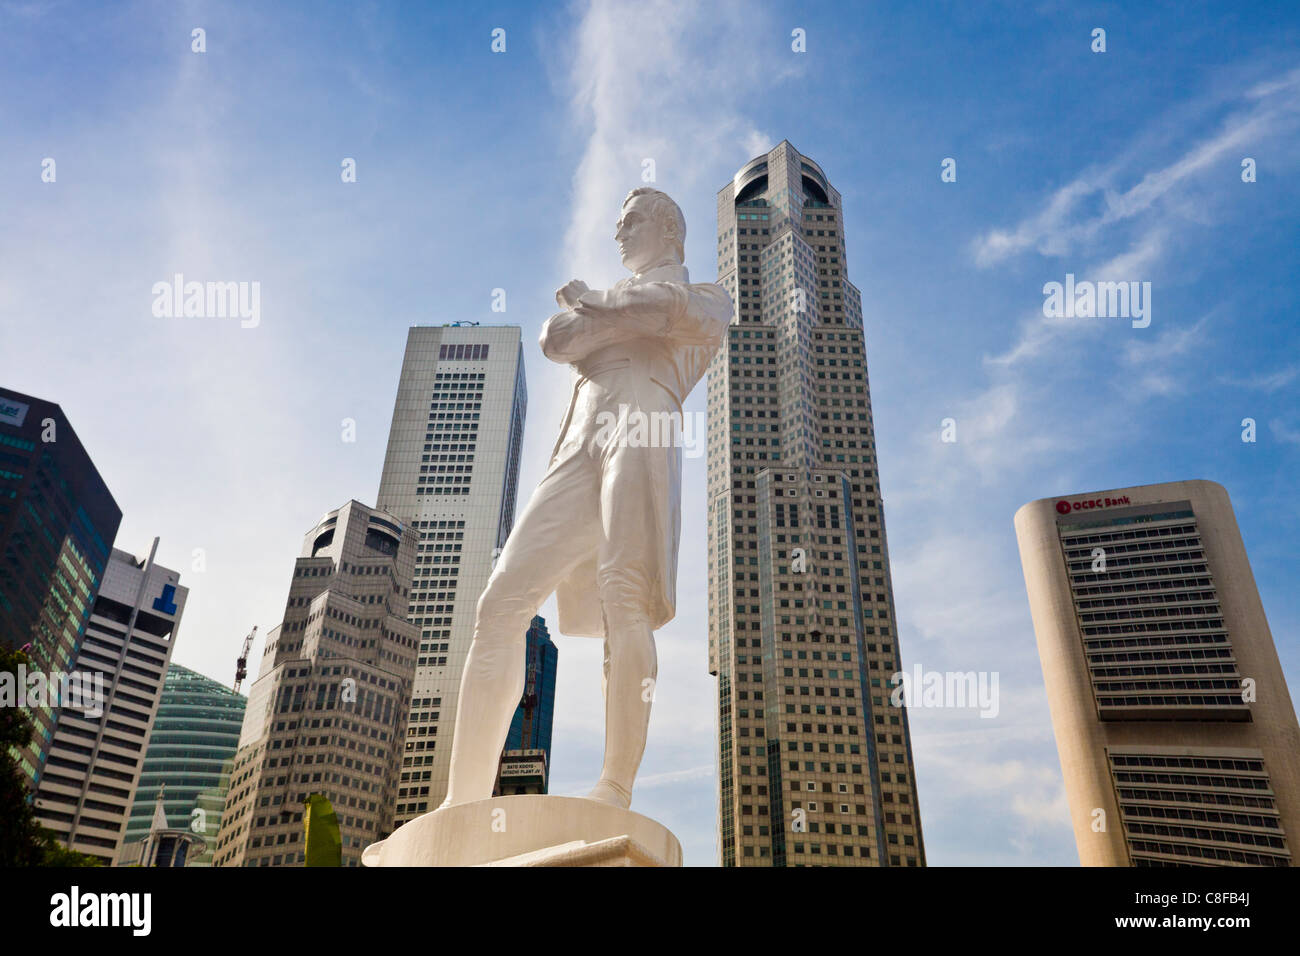 Singapore, Asia, Raffles monument, monument, Raffles, blocks of flats, high-rise buildings, skyscrapers, Downtown, - Stock Image